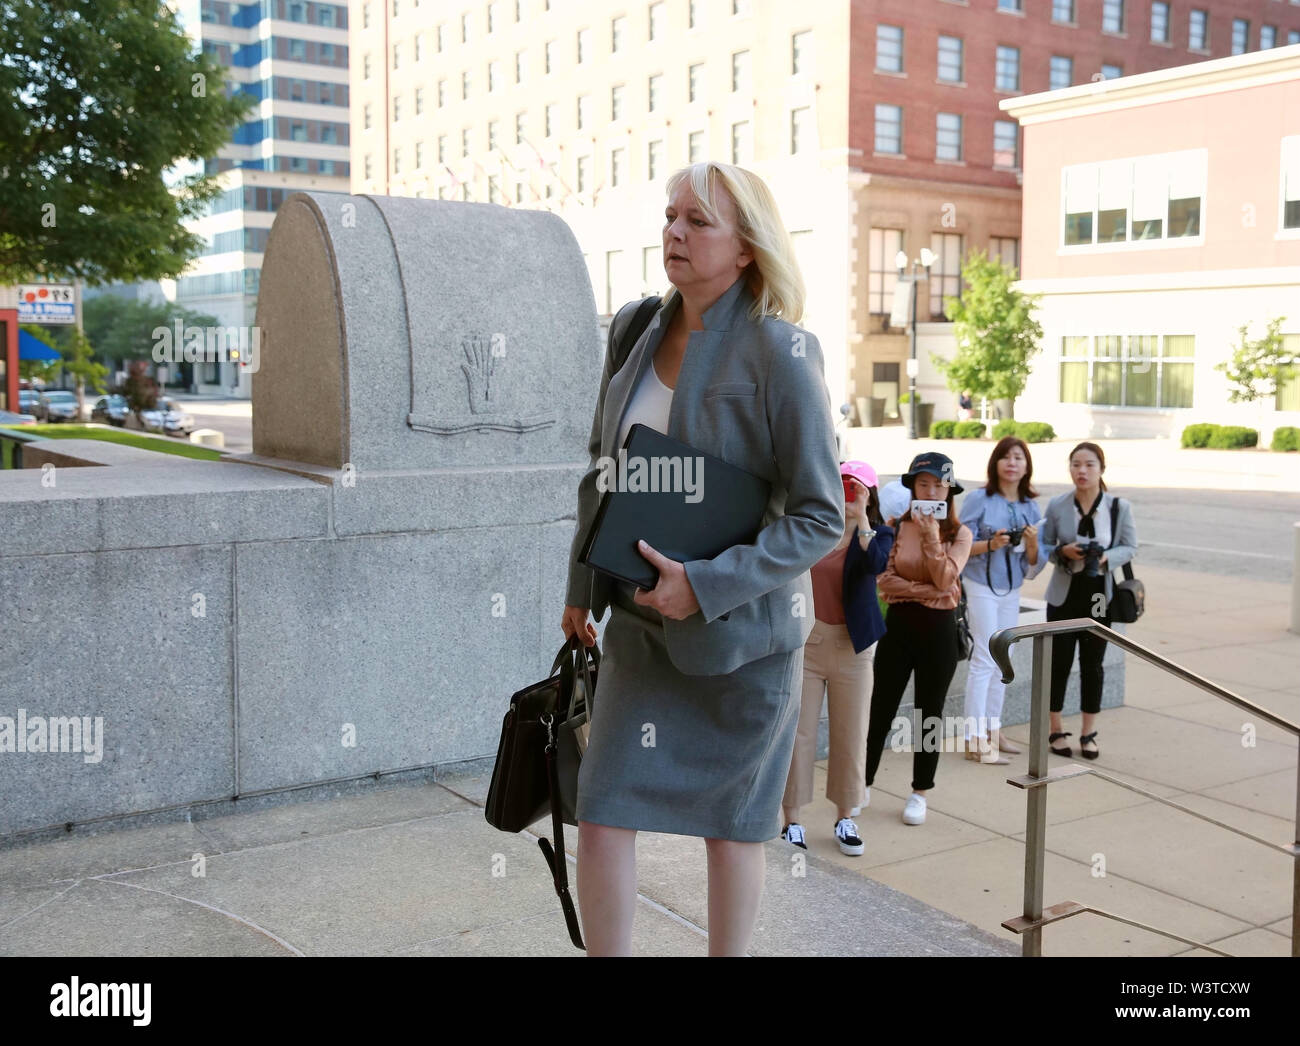 (190717) -- PEORIA (U.S.), July 17, 2019 (Xinhua) -- Julie Brain, defense attorney for Brendt Christensen, heads to the federal courthouse building in Peoria, Illinois, the United States, on July 17, 2019. After a U.S. judge concludes all the evidence from the sentencing phase in the Chinese scholar slaying trial Tuesday, closing arguments from both prosecutors and the defense started here Wednesday morning. The closing arguments of the sentencing phase for Brendt Christensen who was found guilty of killing Zhang Yingying in 2017 took place around 9 a.m.(1400 GMT) at a federal court of Peoria, - Stock Image